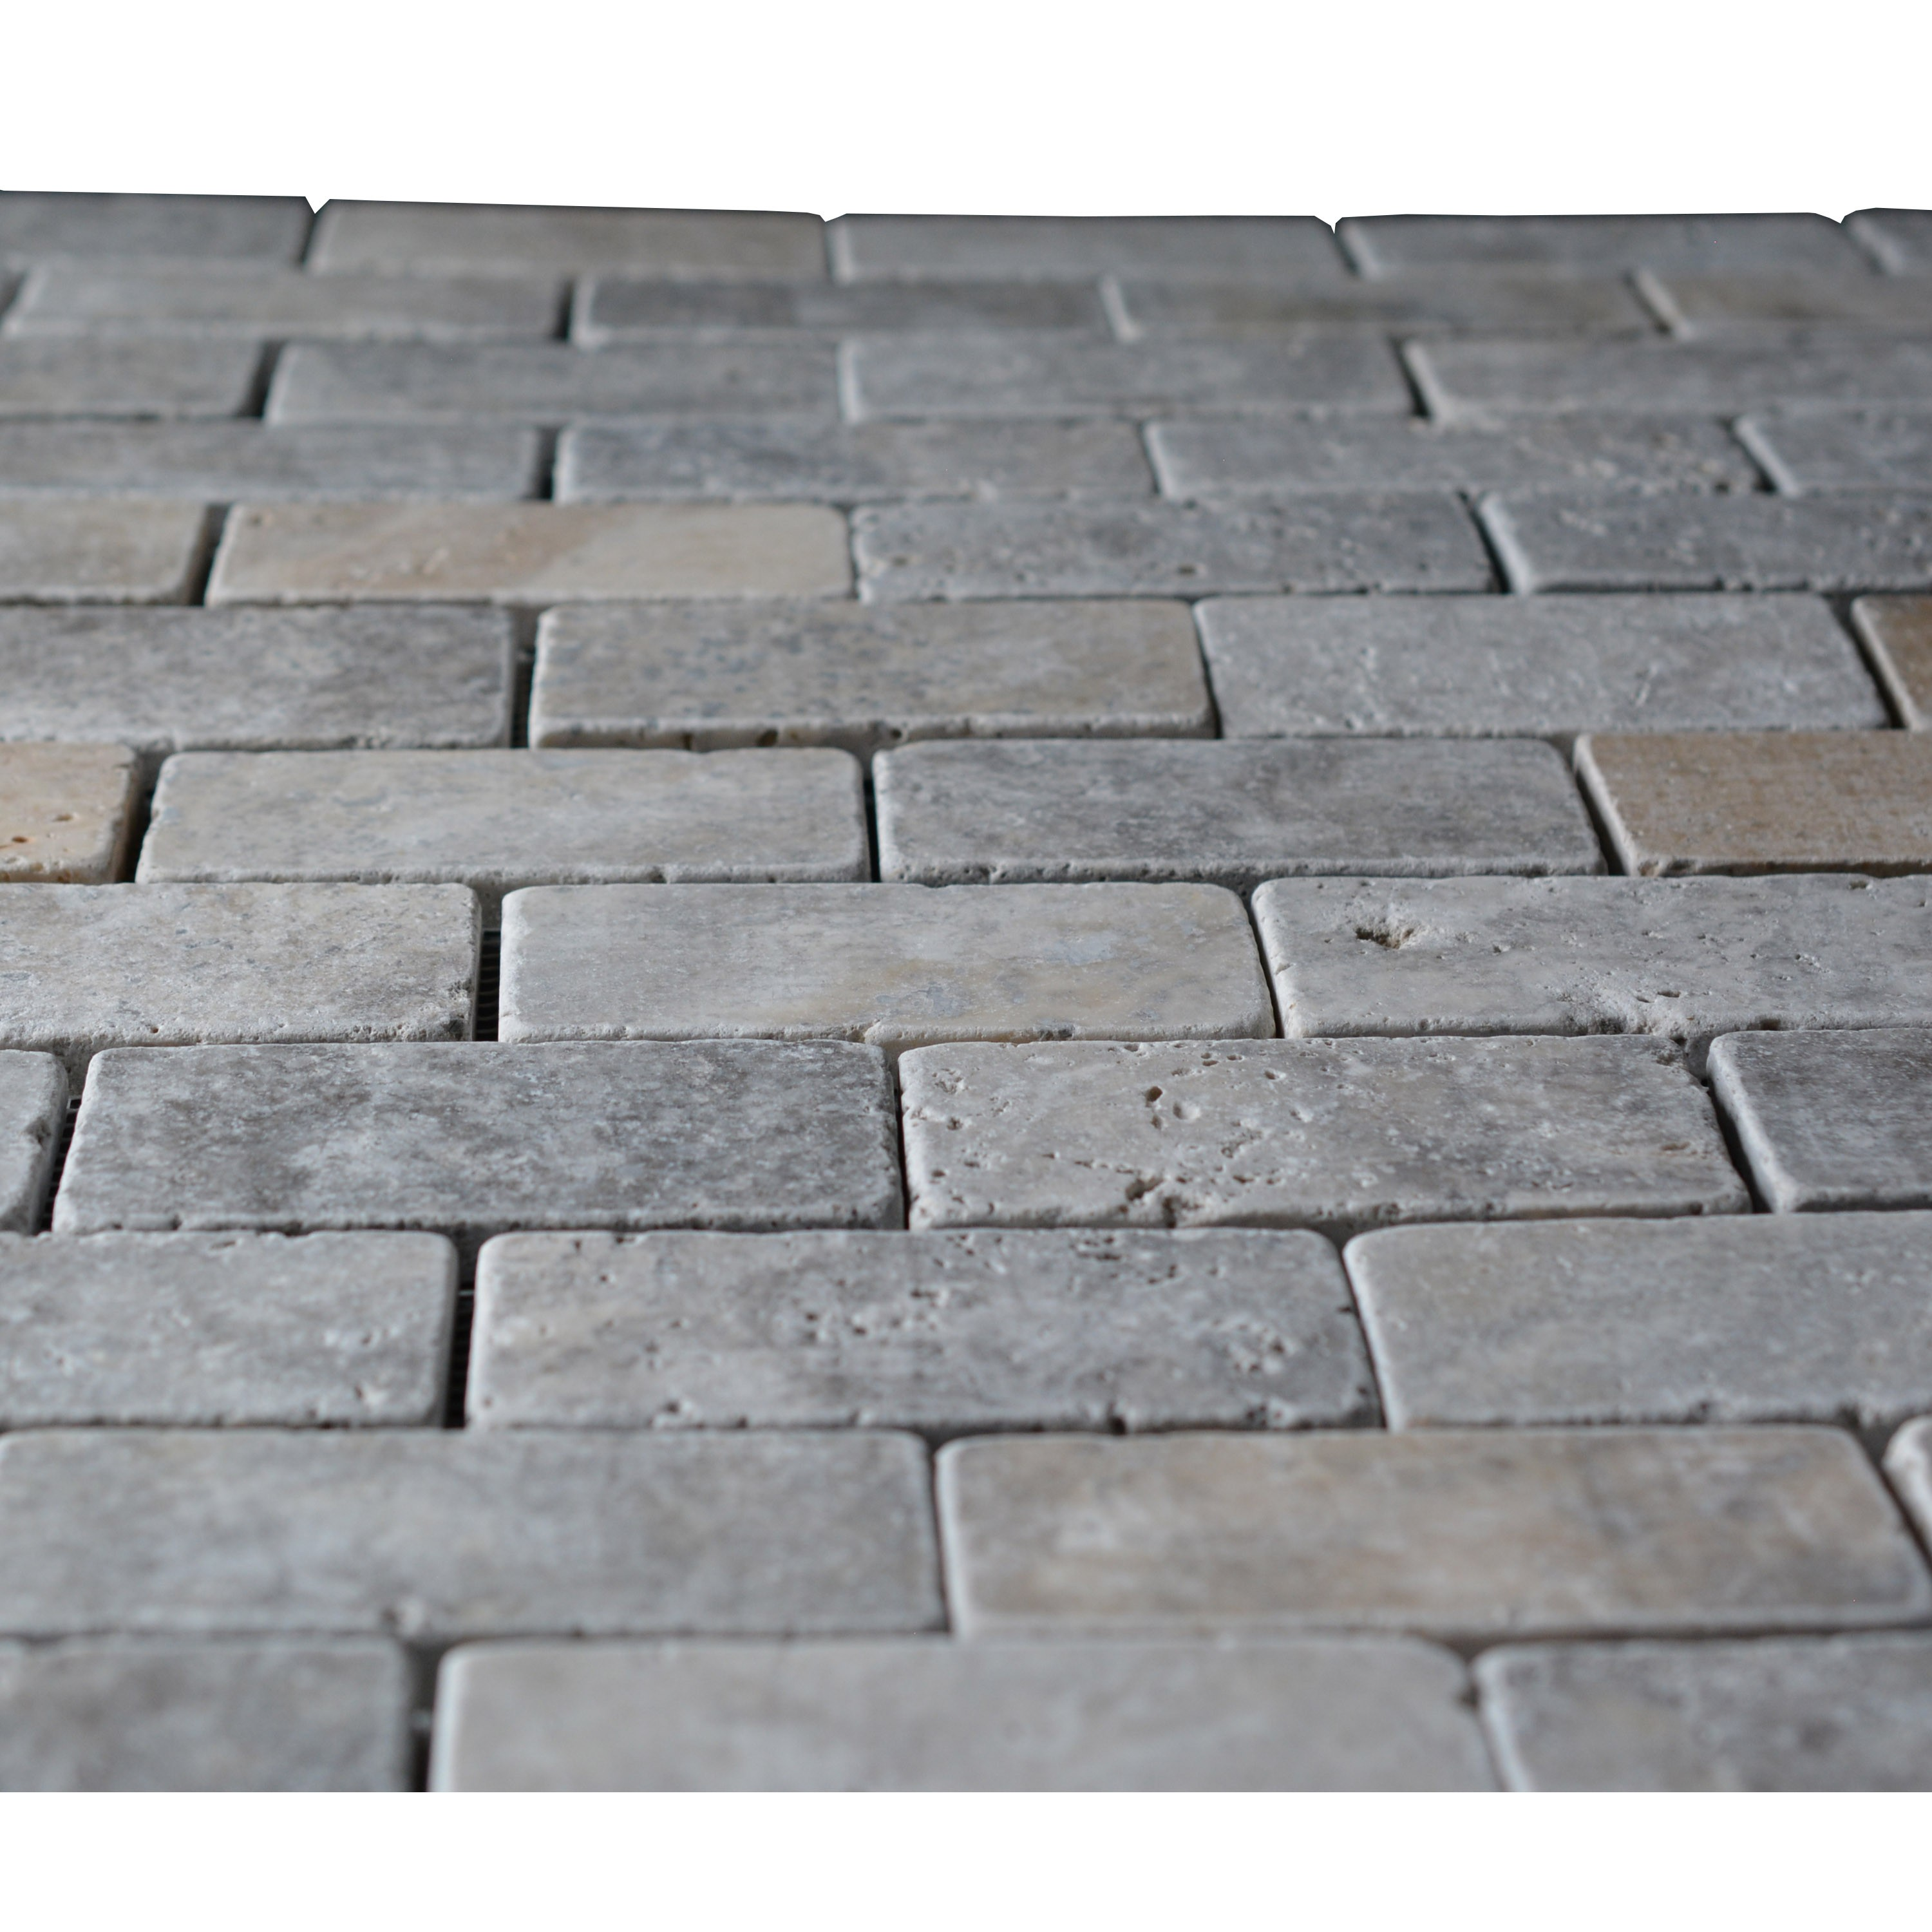 Silver Travertine 2x4 Tumbled Mosaic Tile Mosaic